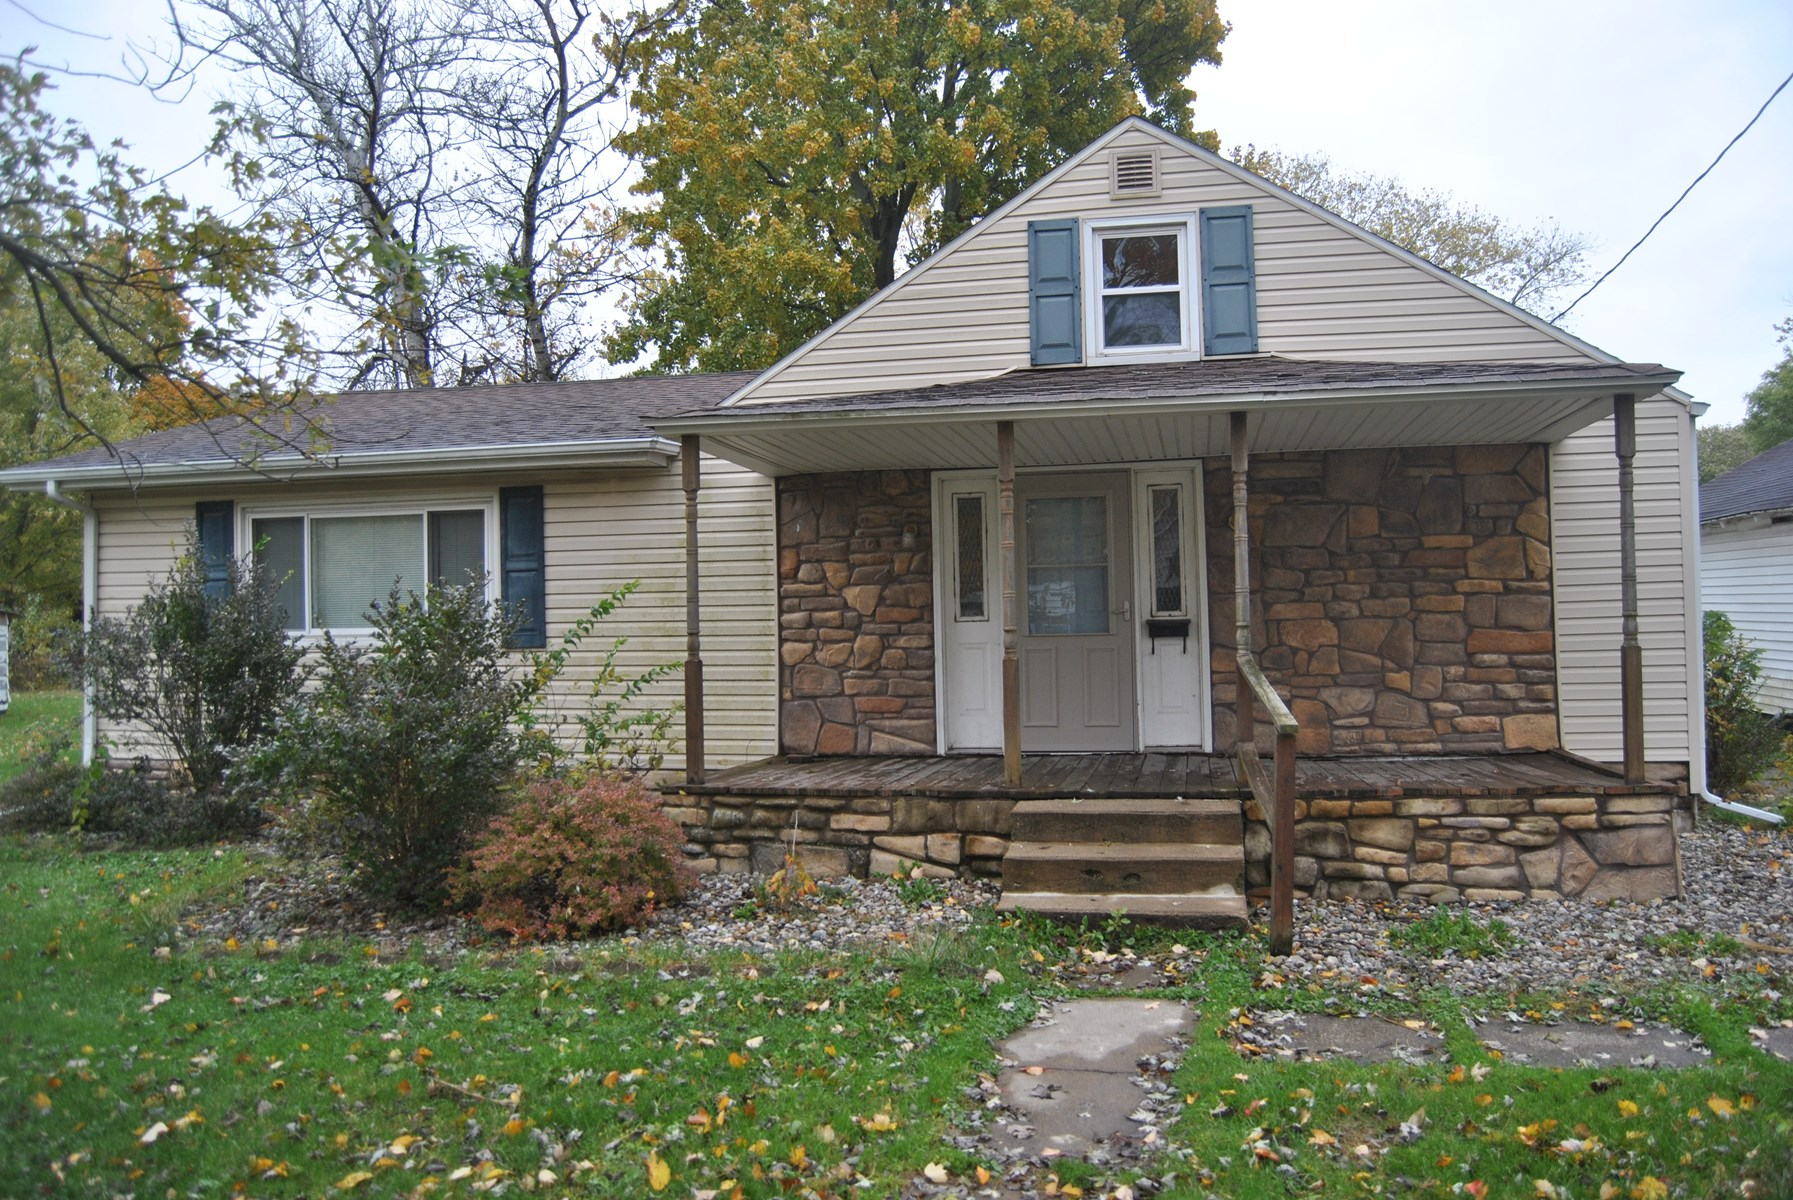 3 Bedroom, 2 Bath Home, Casey, IL